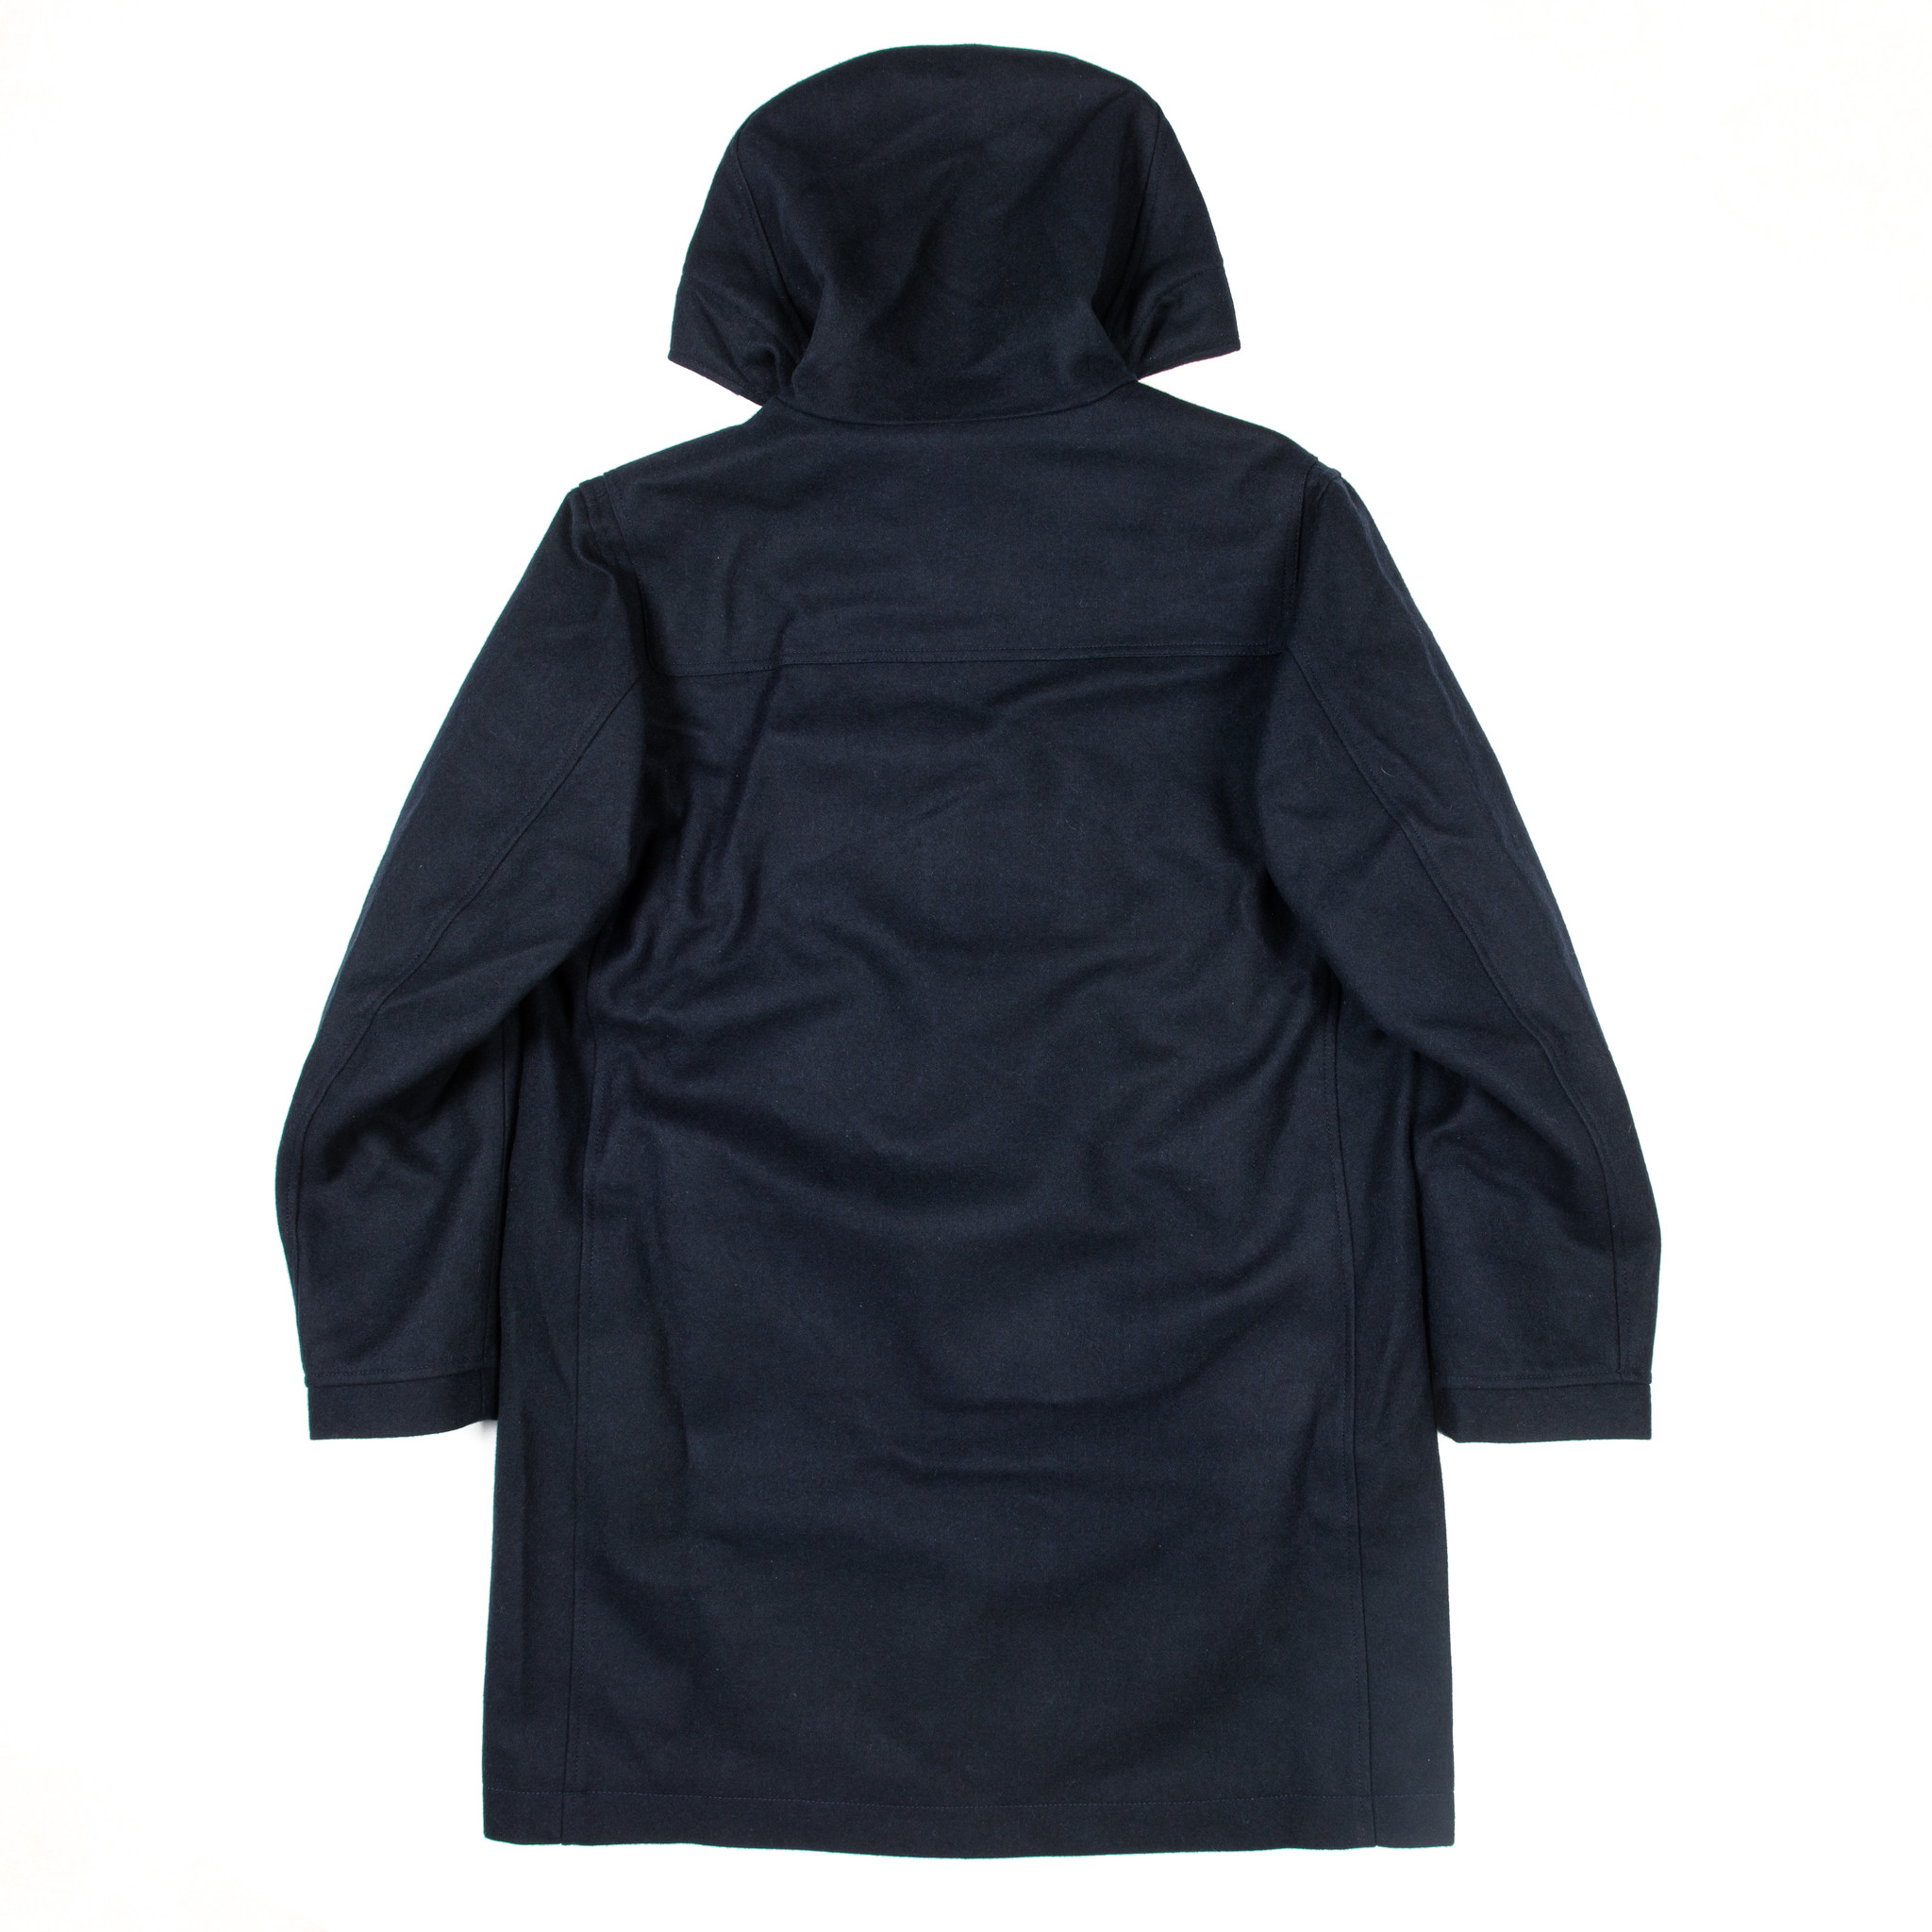 nanamica windstopper duffle coat navy garmentory. Black Bedroom Furniture Sets. Home Design Ideas